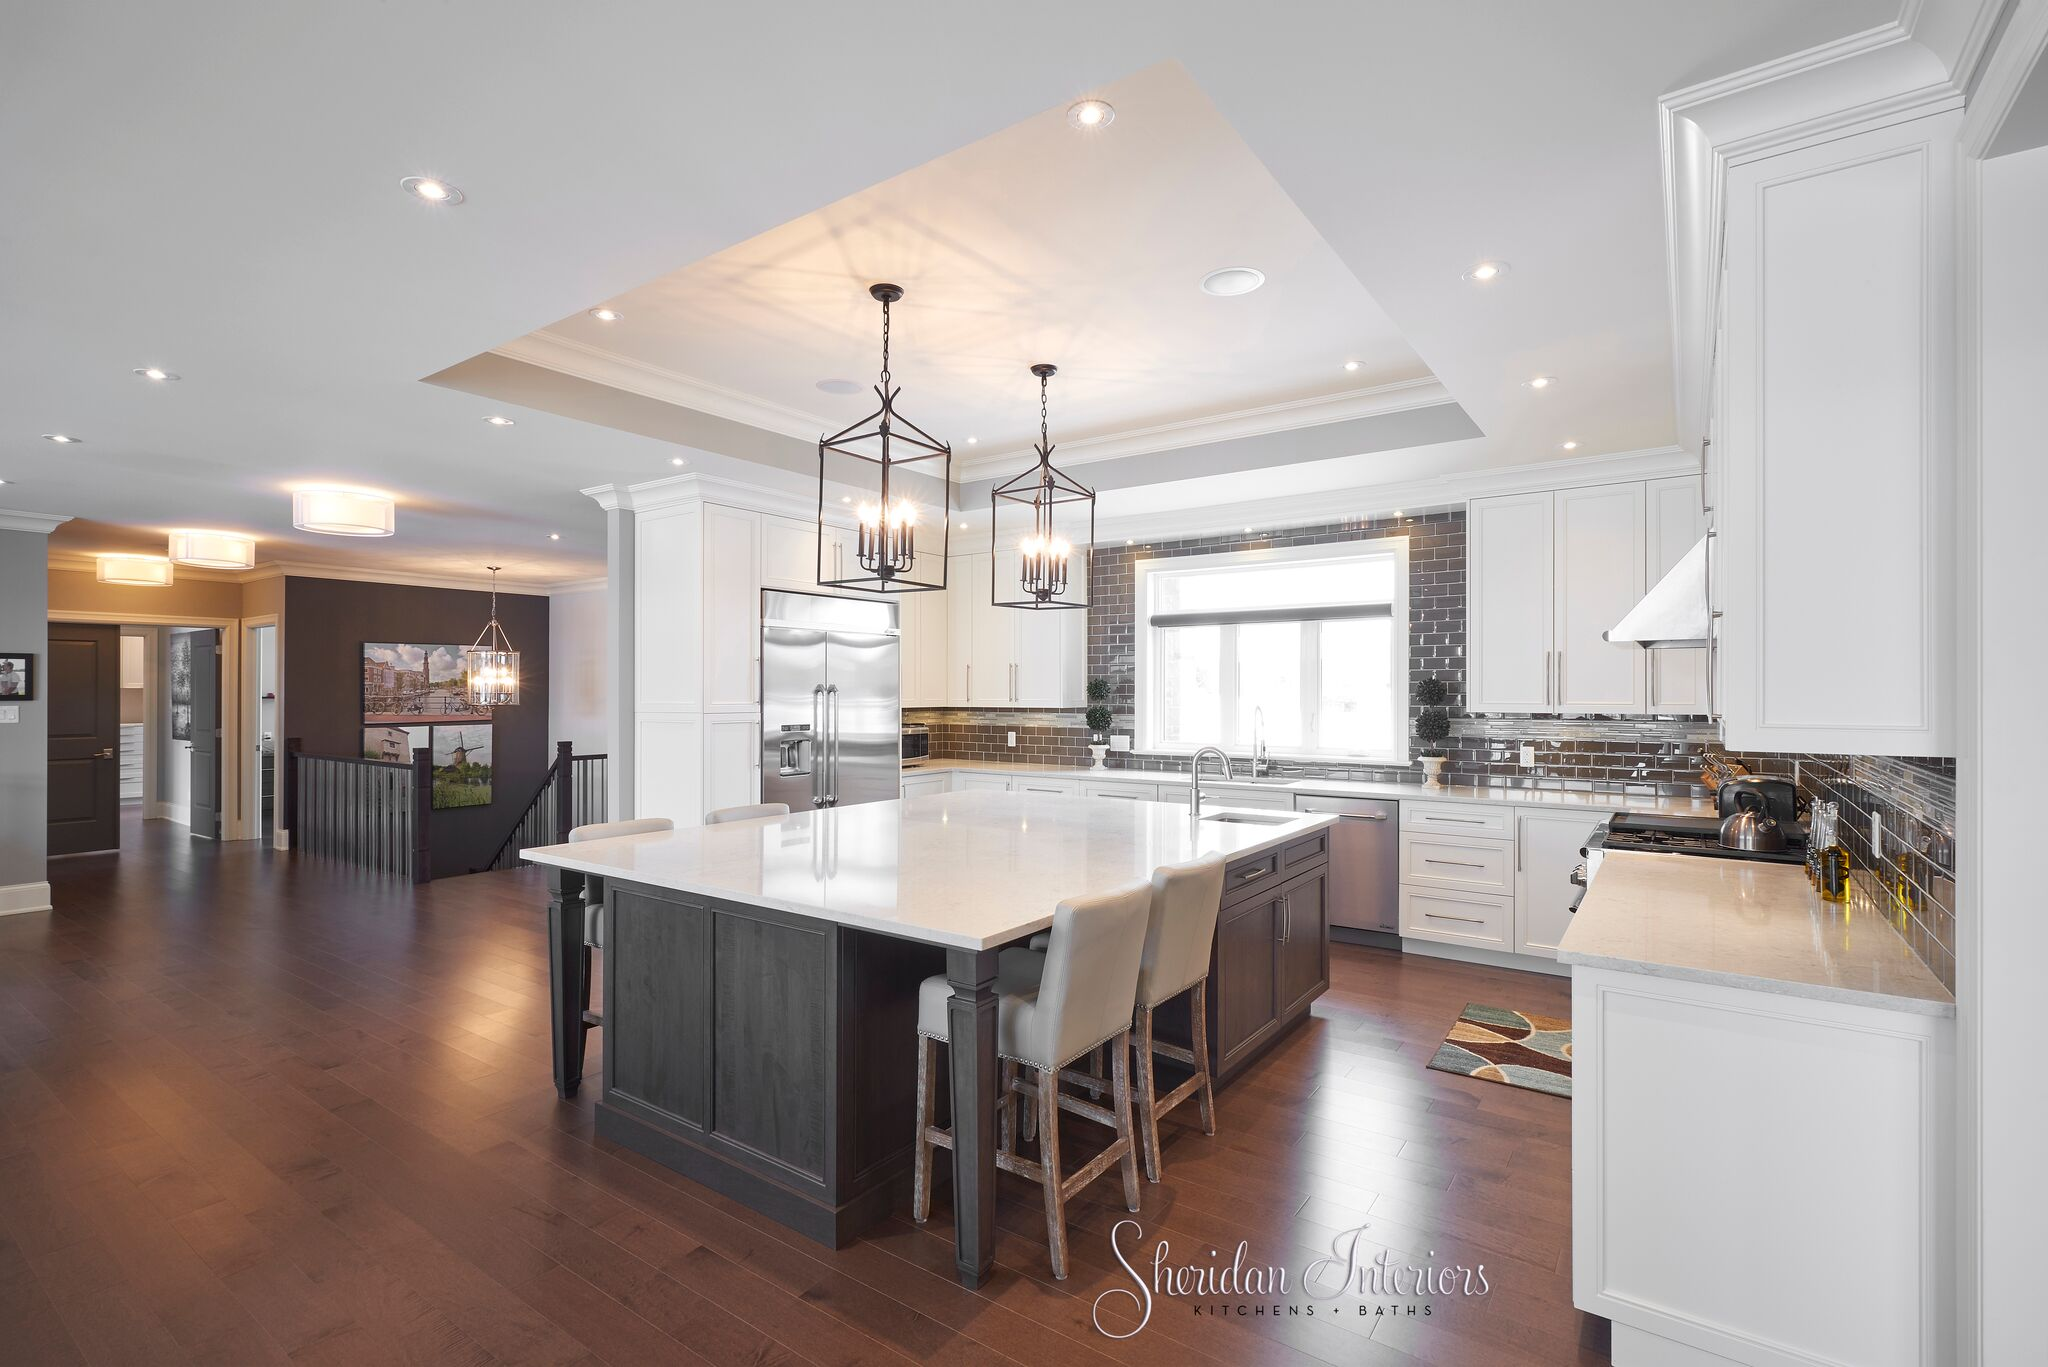 Contemporary Kitchen with Large Island - Sheridan Interiors